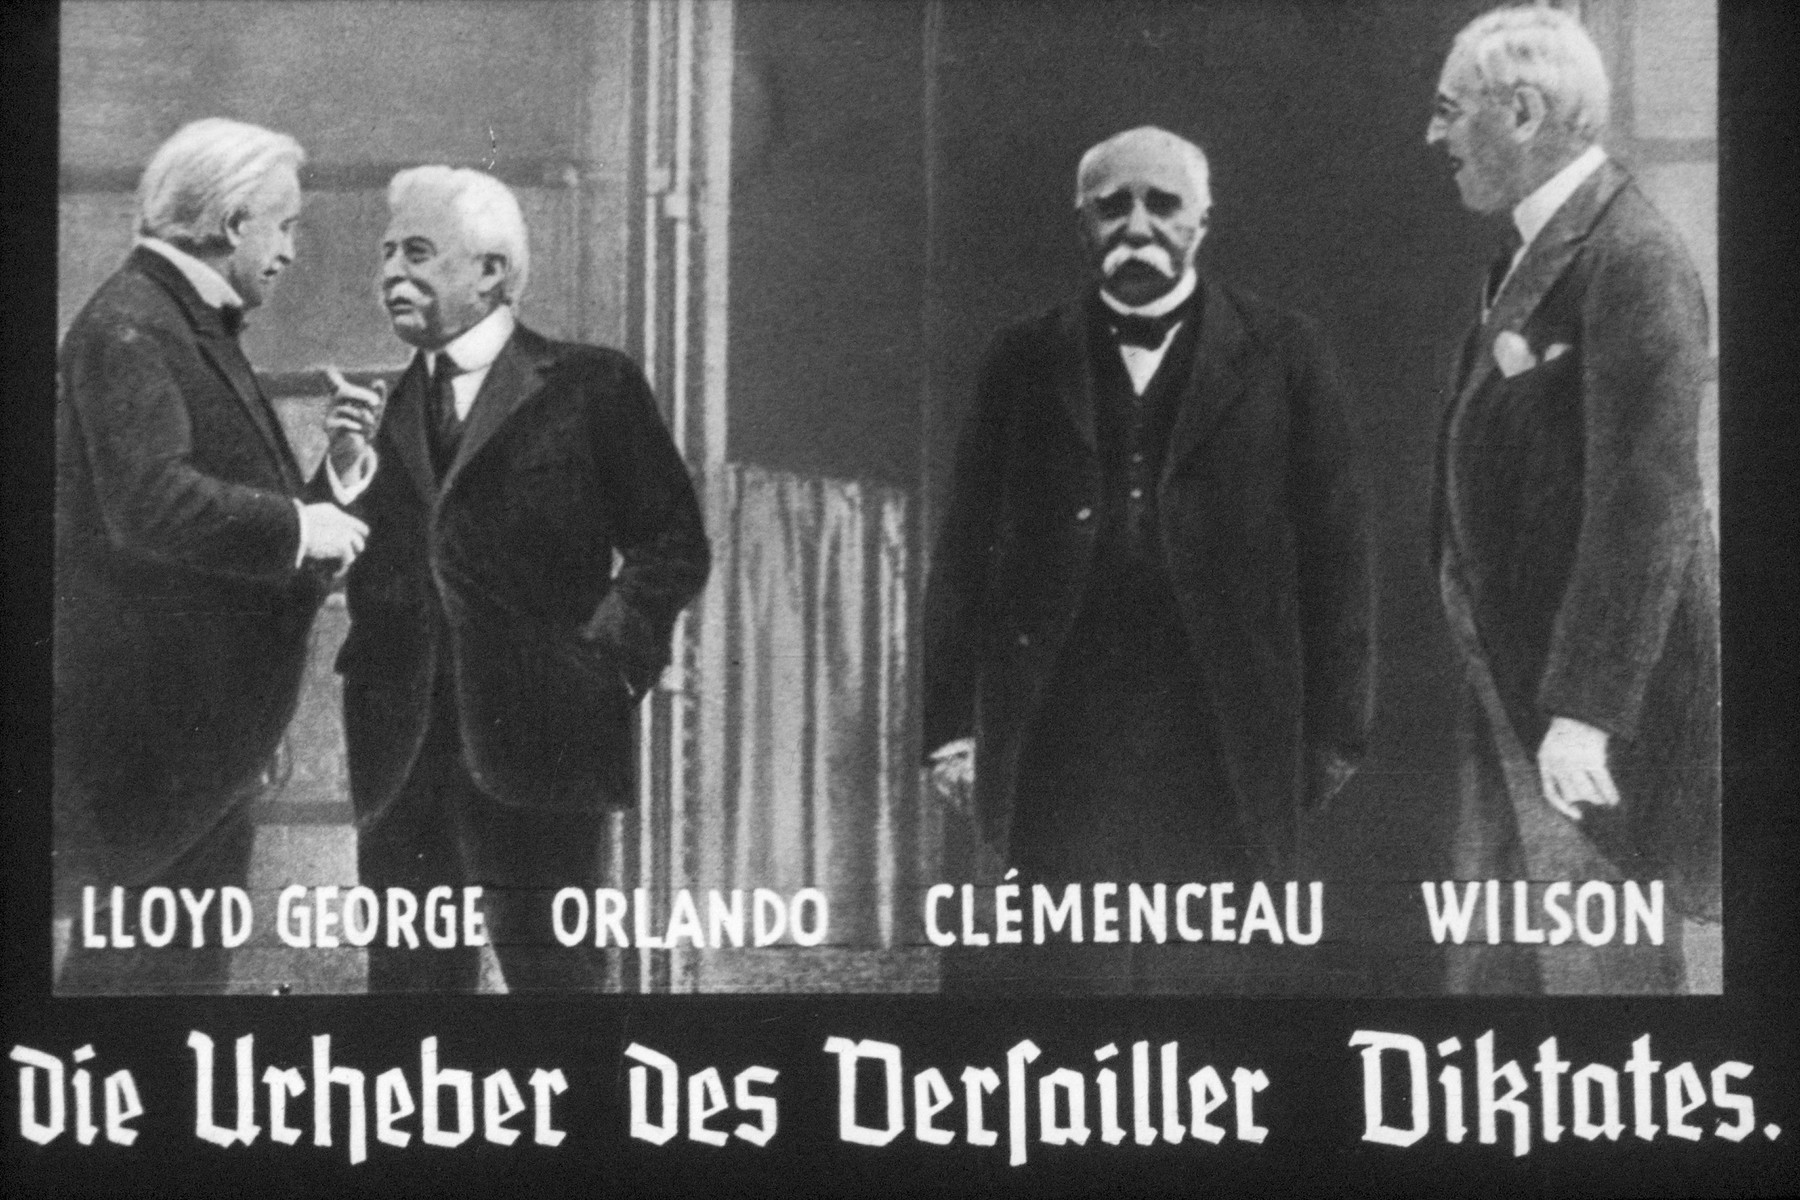 33th slide from a Hitler Youth slideshow about the aftermath of WWI, Versailles, how it was overcome and the rise of Nazism.  Lloyd George Orlando Cemenceau Wilson-Die Urheber des Versailler Diktates. // Lloyd George Orlando Cemenceau Wilson-The copyrighters) author of the Versailles Diktat.